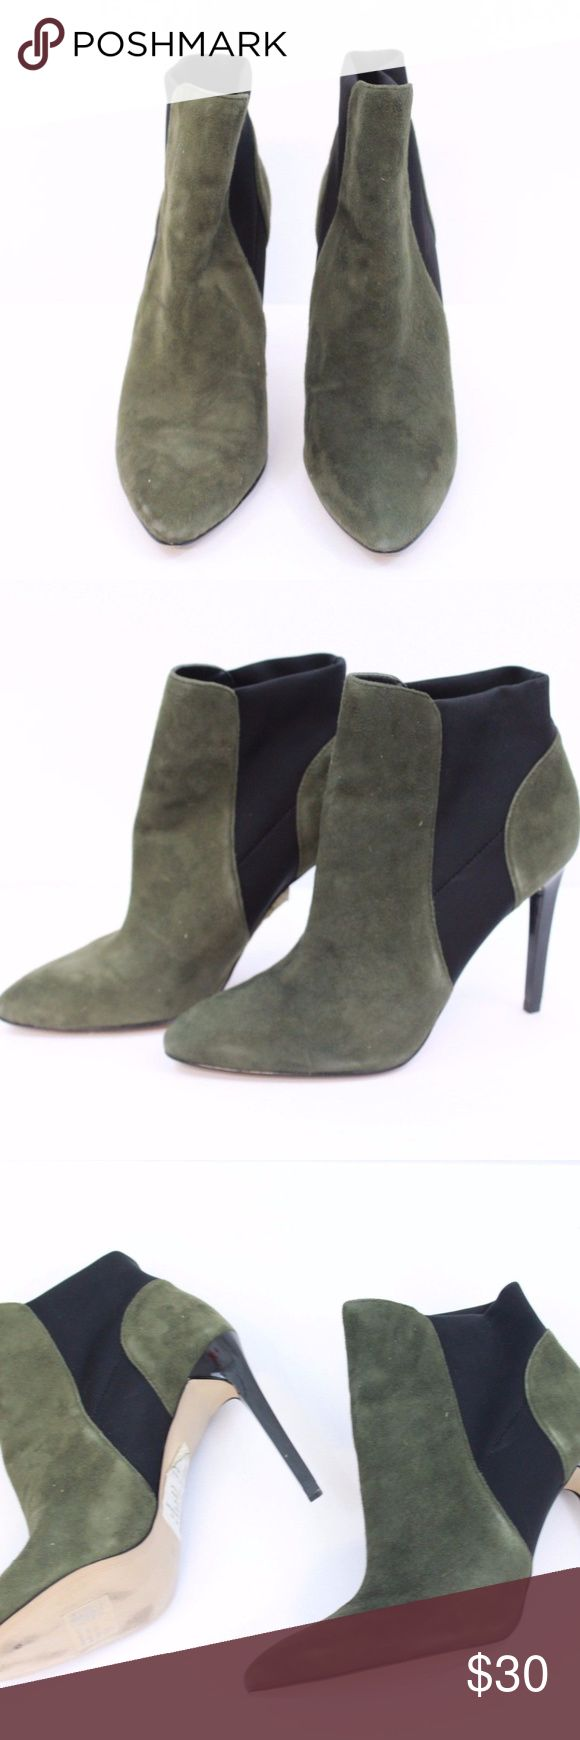 French Connection Women's Booties Sz 9 French Connection Women's Booties Sz 9 Stiletto Heels Olive Green Black   Brand: French Connection  Size:  US 9, UK 39 Condition: Used, No rips, No stains French Connection Shoes Ankle Boots & Booties